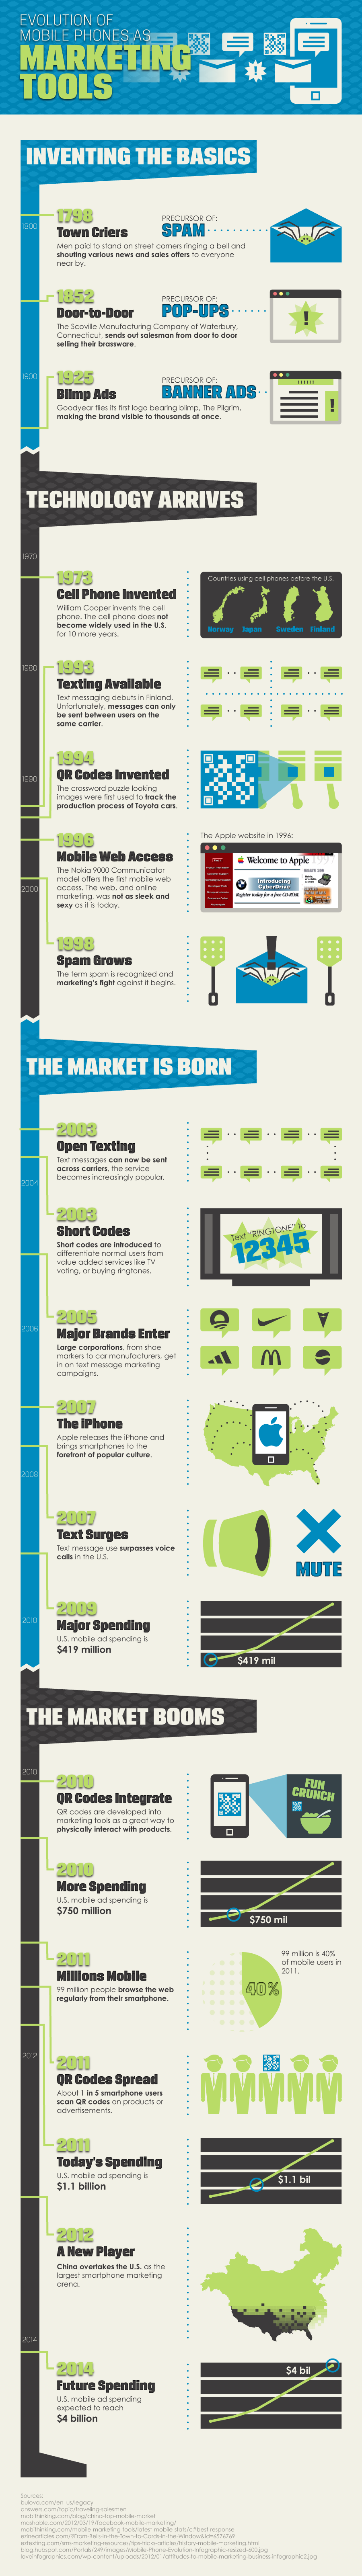 Mobile Phones in Marketing-Infographic